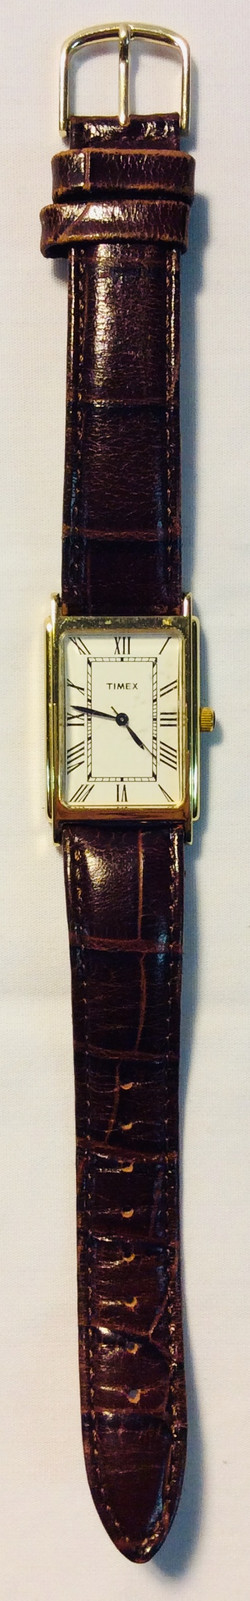 Timex White square face